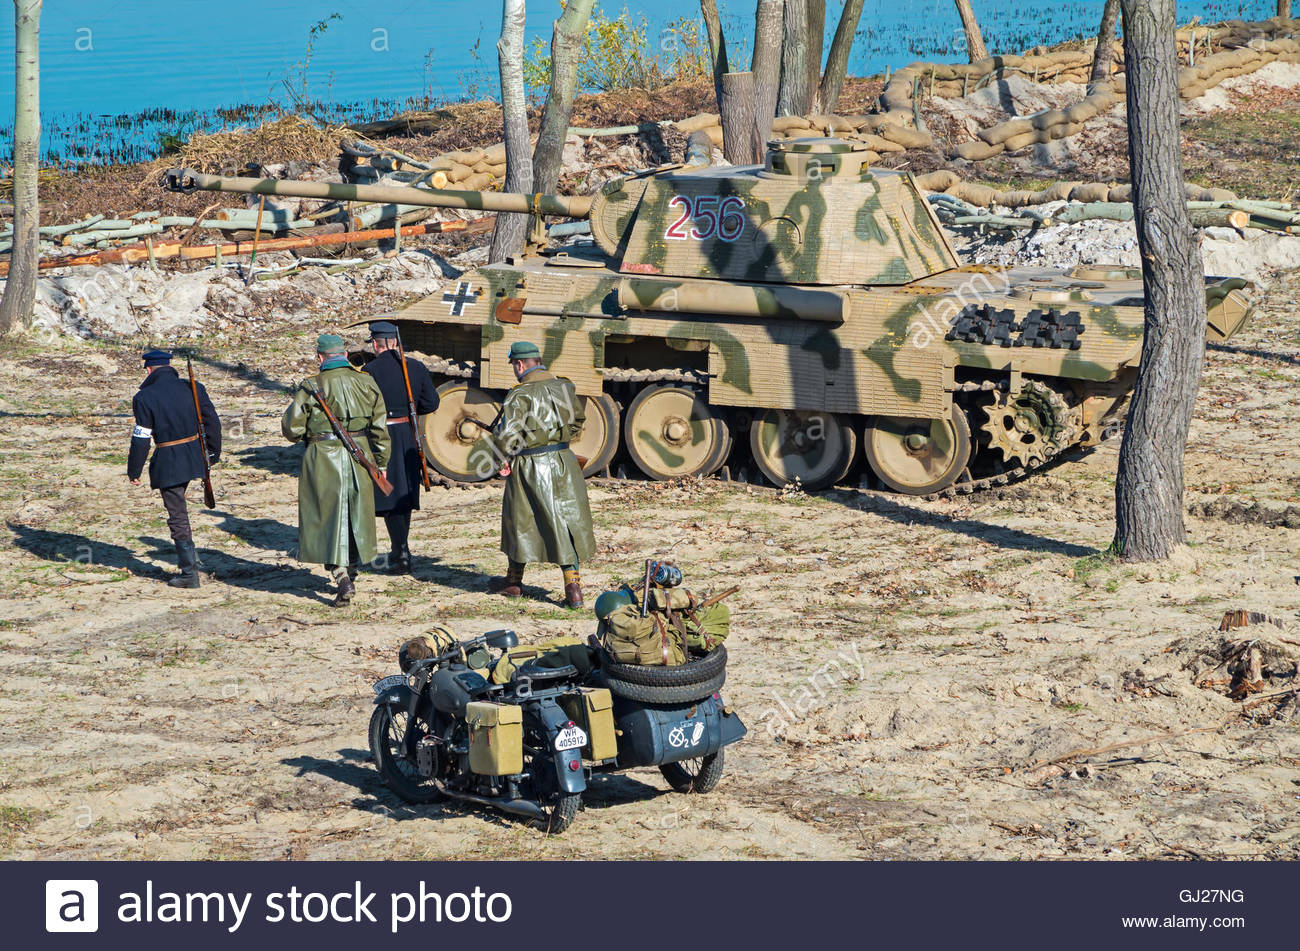 dnepropetrovsk-ukraine-october-29-2013-wehrmacht-troops-with-policemen-GJ27NG